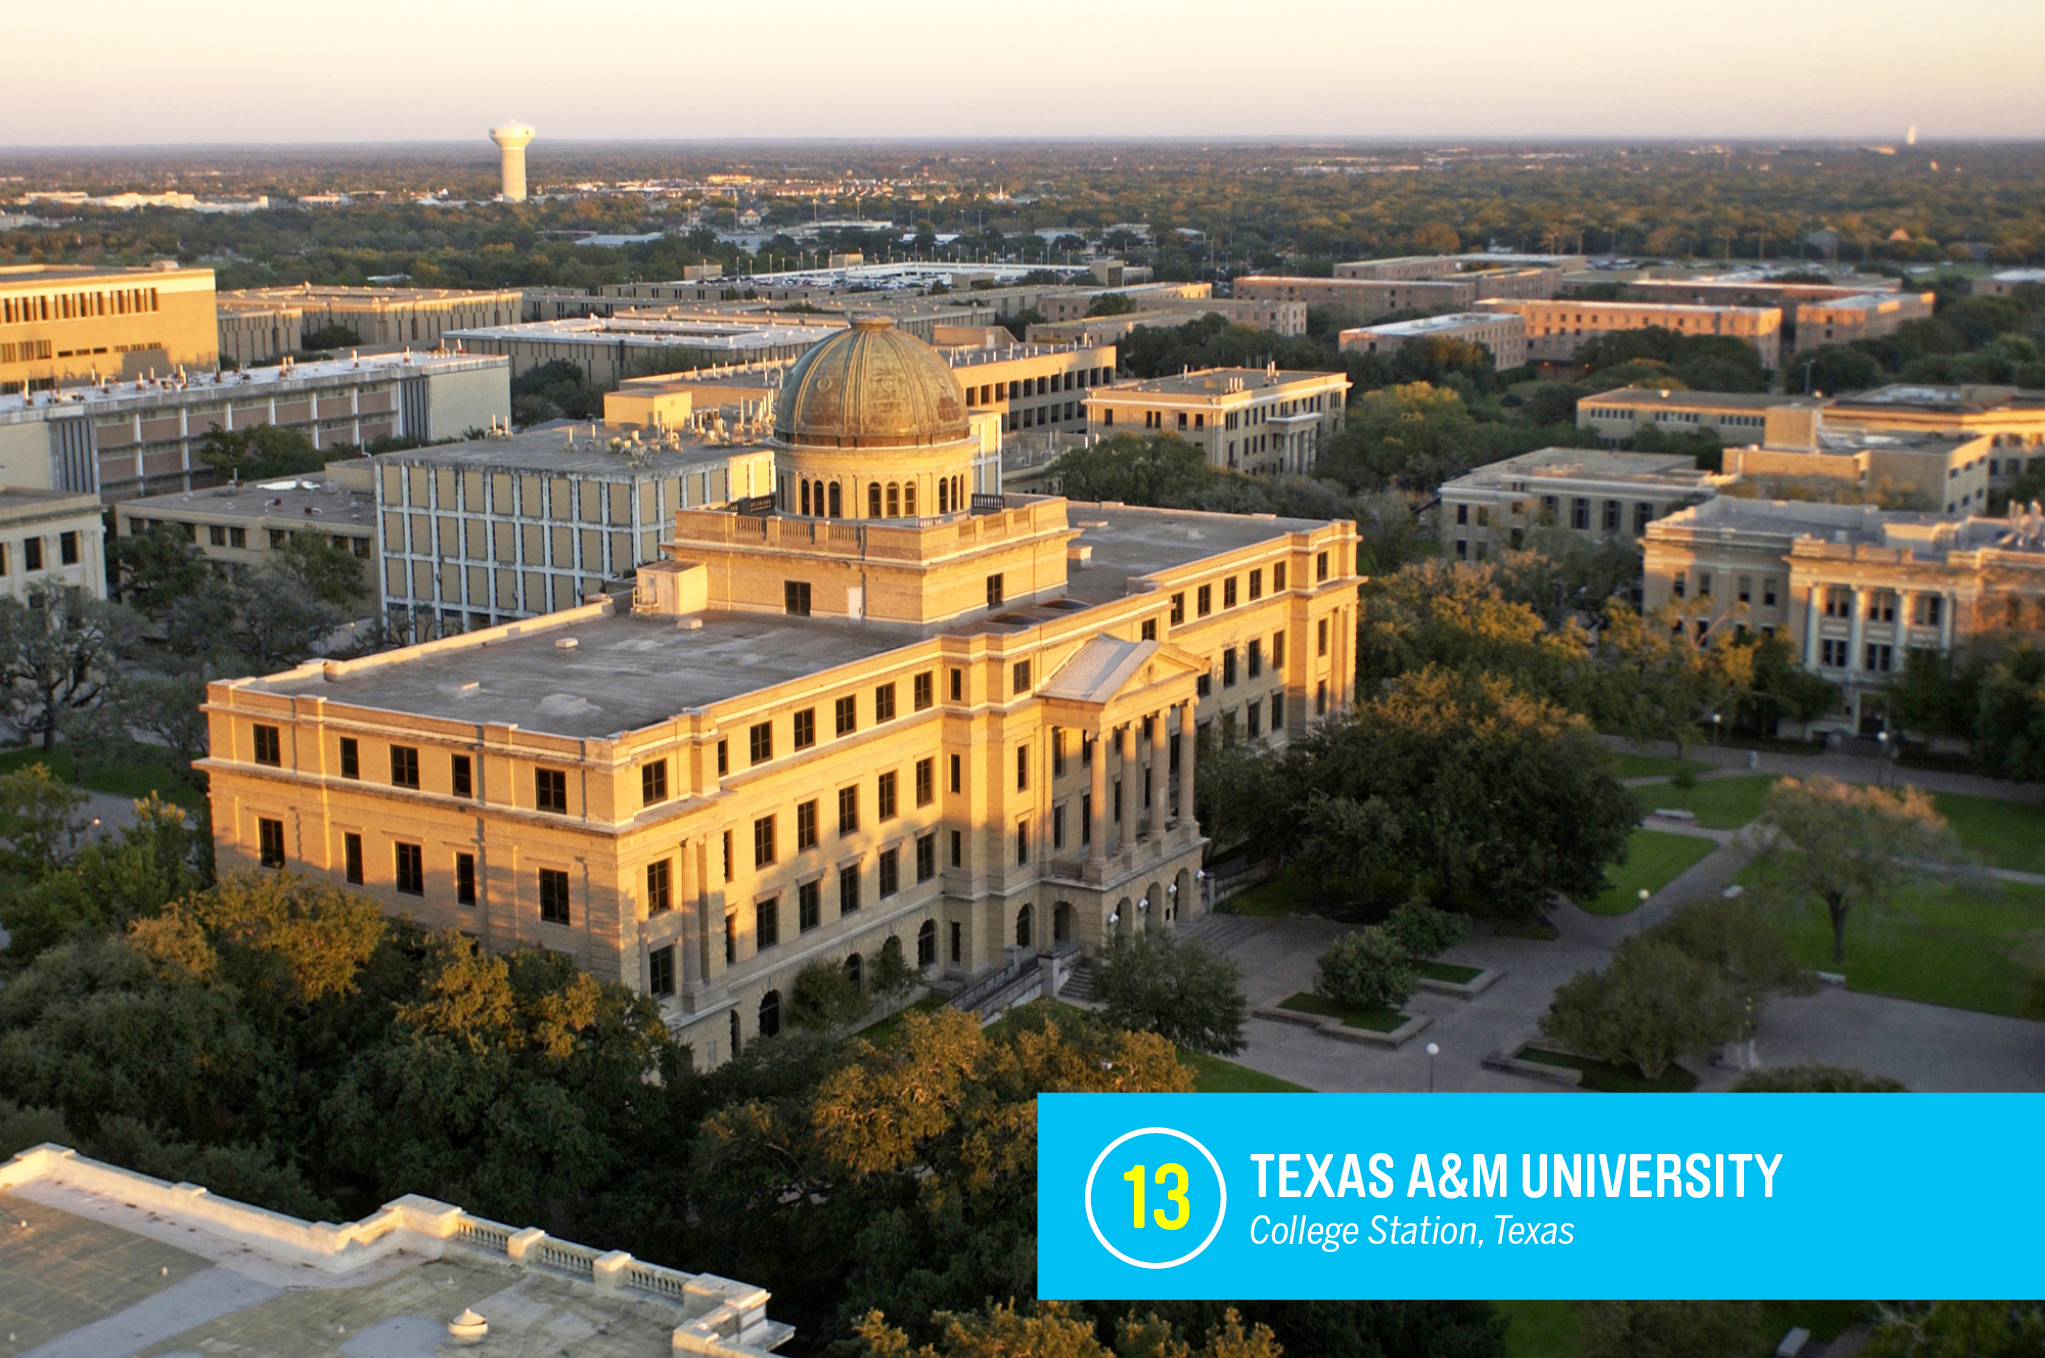 "<a href=""https://money.com/best-colleges/profile/texas-a-and-m-university-college-station/"" target=""_blank"">Texas A&amp;M</a> has one of the largest undergraduate student bodies in the country, with more the 40,000 students who graduate into an especially proud, loyal group of alumni. The college is well known for its business, agriculture, and engineering programs, as well as a recreation, park, and tourism management program. <a href=""https://money.com/best-colleges/profile/texas-a-and-m-university-college-station/"" target=""_blank"">FULL PROFILE</a>"